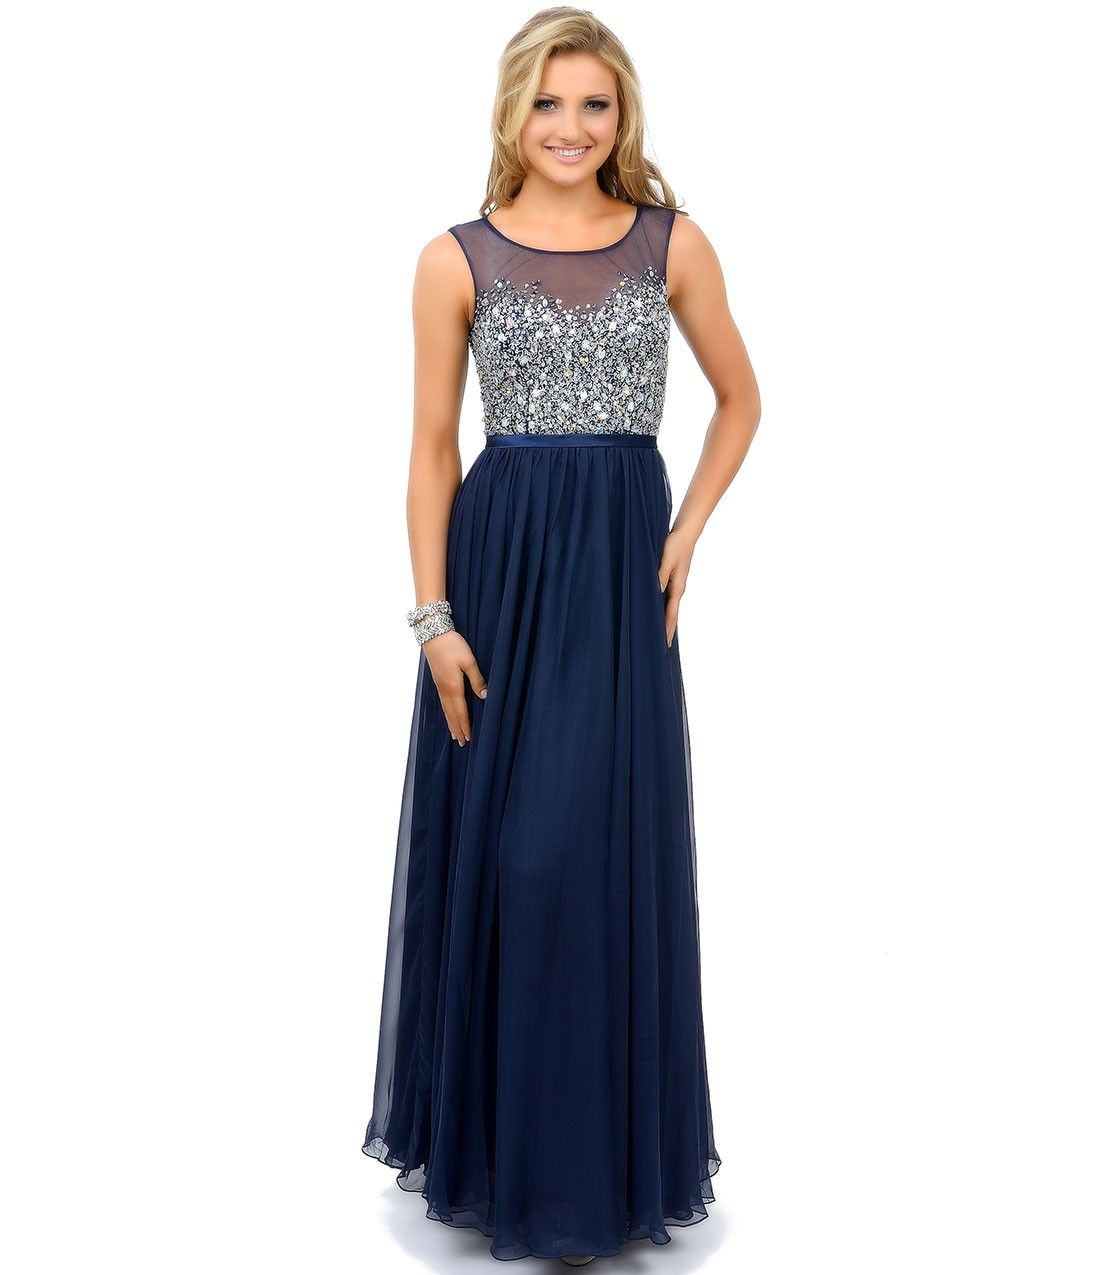 Navy Blue Crystal Beaded Sleeveless Chiffon Long Dress | Kobieta ...